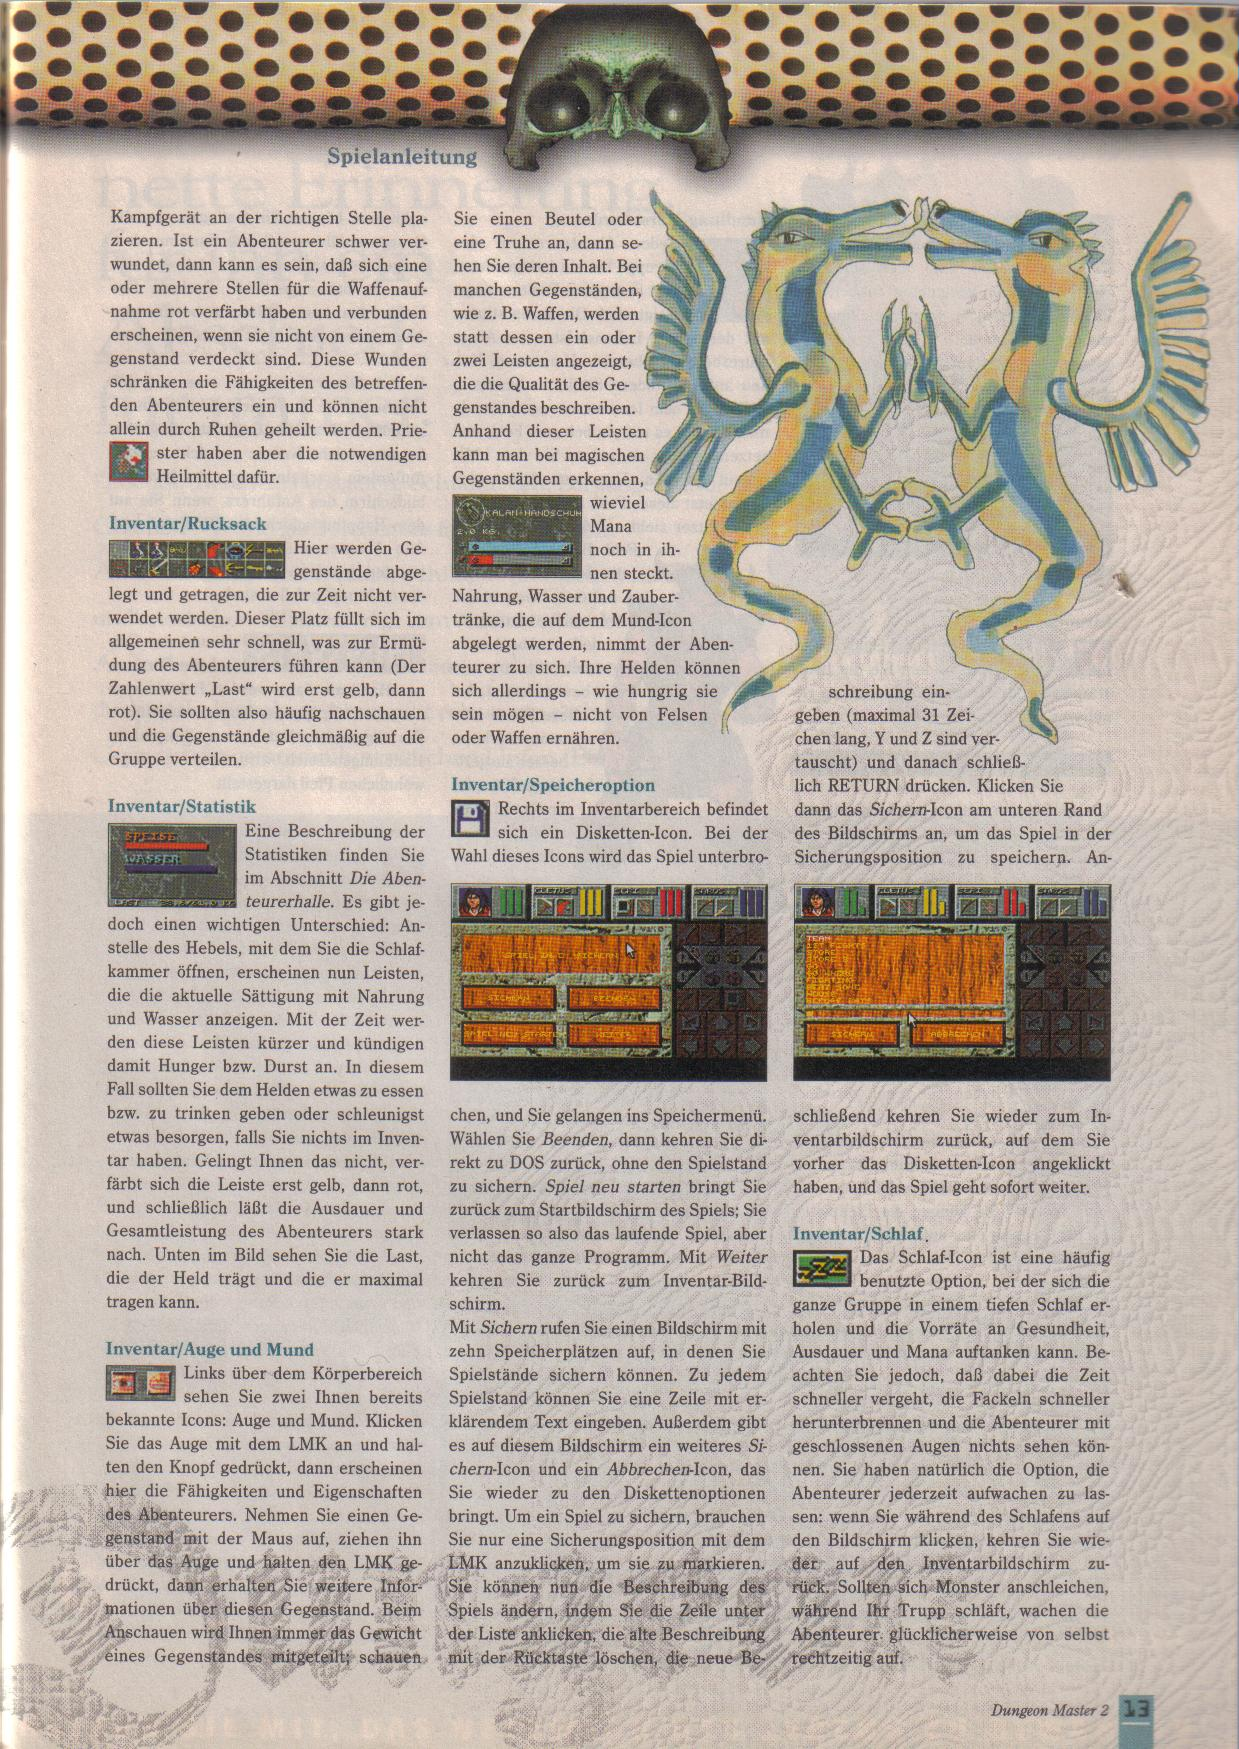 Dungeon Master II for PC (German, Best Seller Games) Page 13